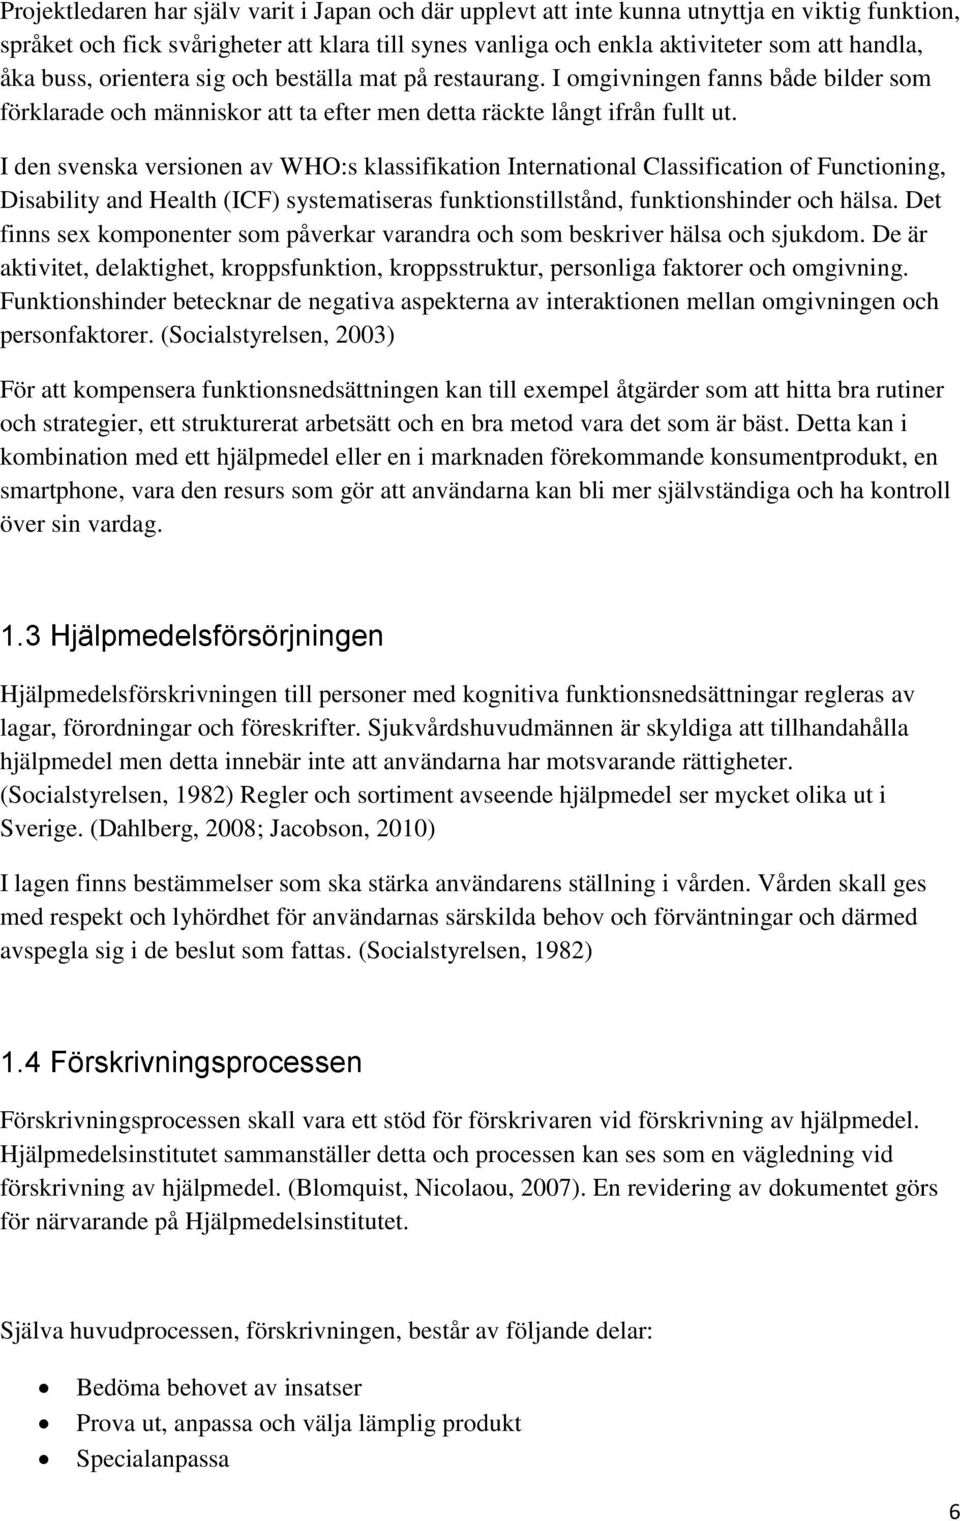 I den svenska versionen av WHO:s klassifikation International Classification of Functioning, Disability and Health (ICF) systematiseras funktionstillstånd, funktionshinder och hälsa.